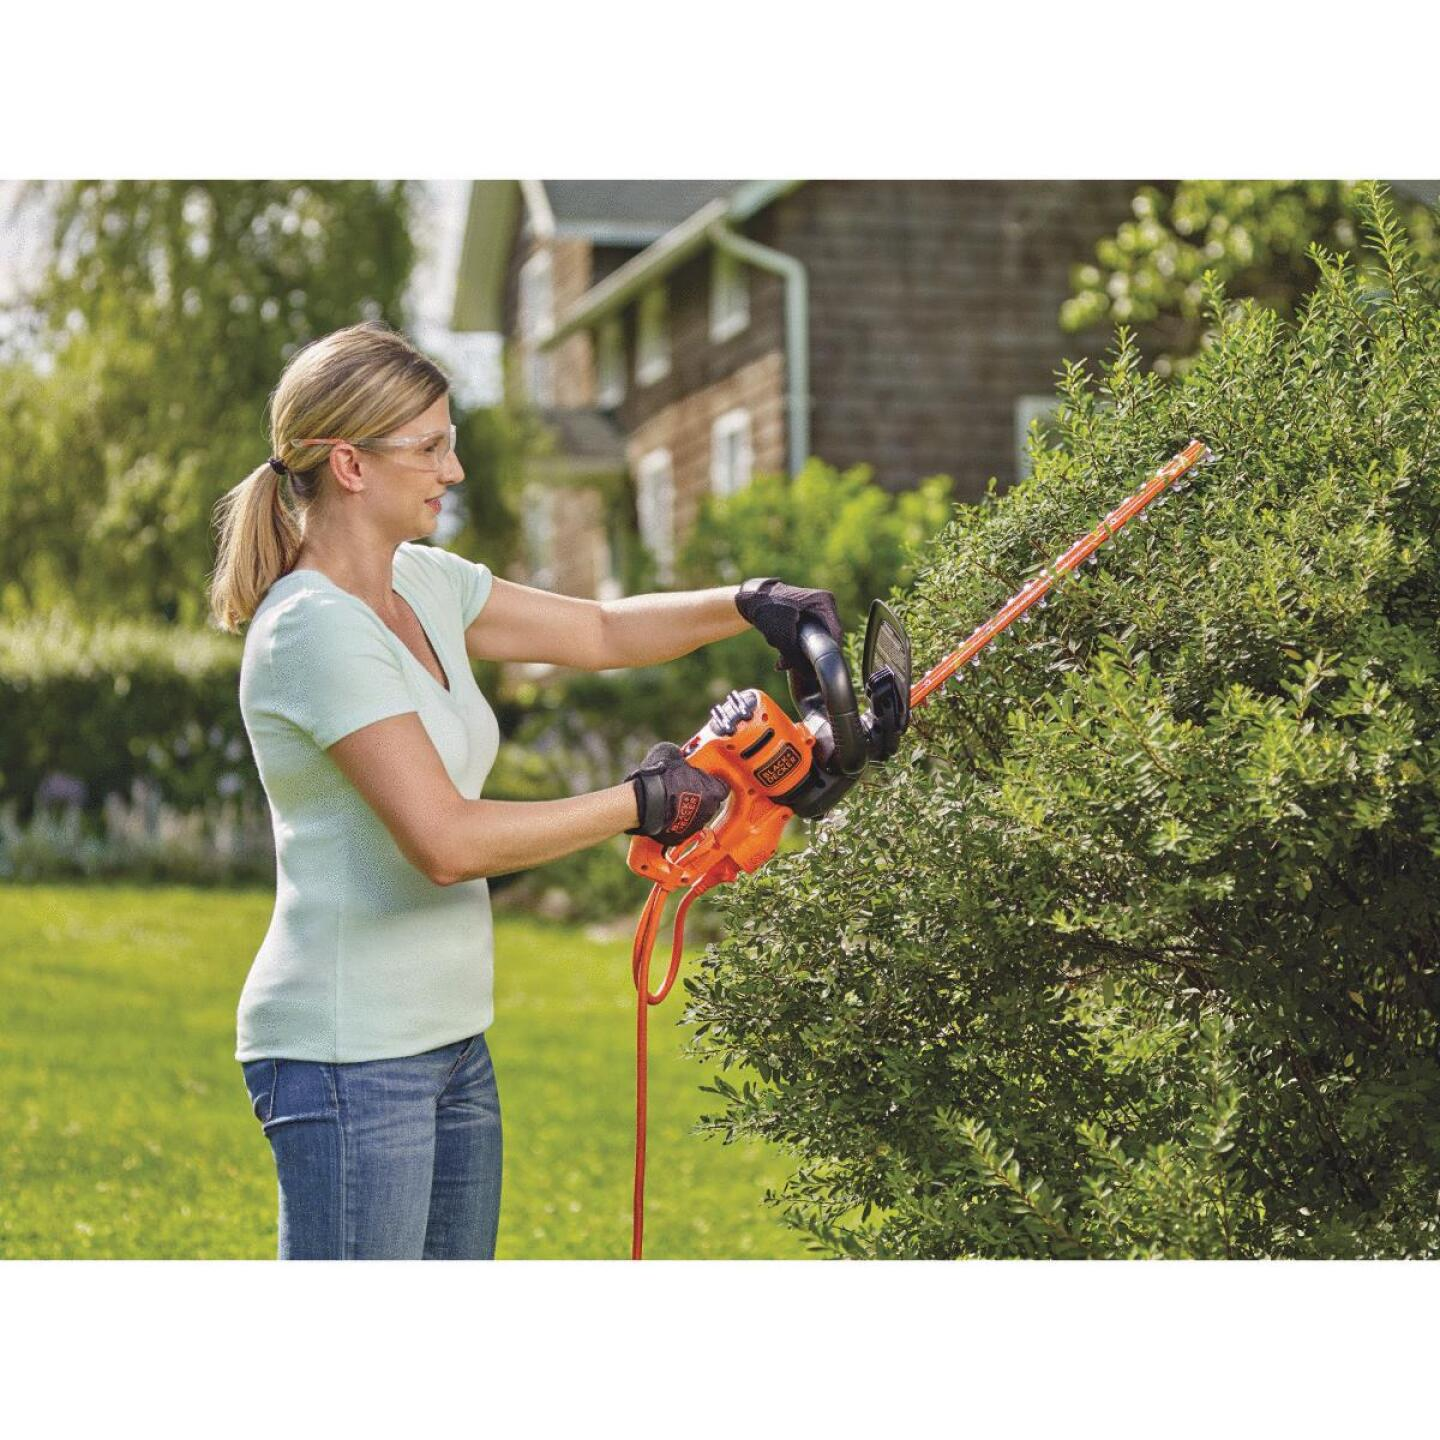 Black & Decker 18 In. 3.5-Amp Corded Electric Hedge Trimmer Image 2